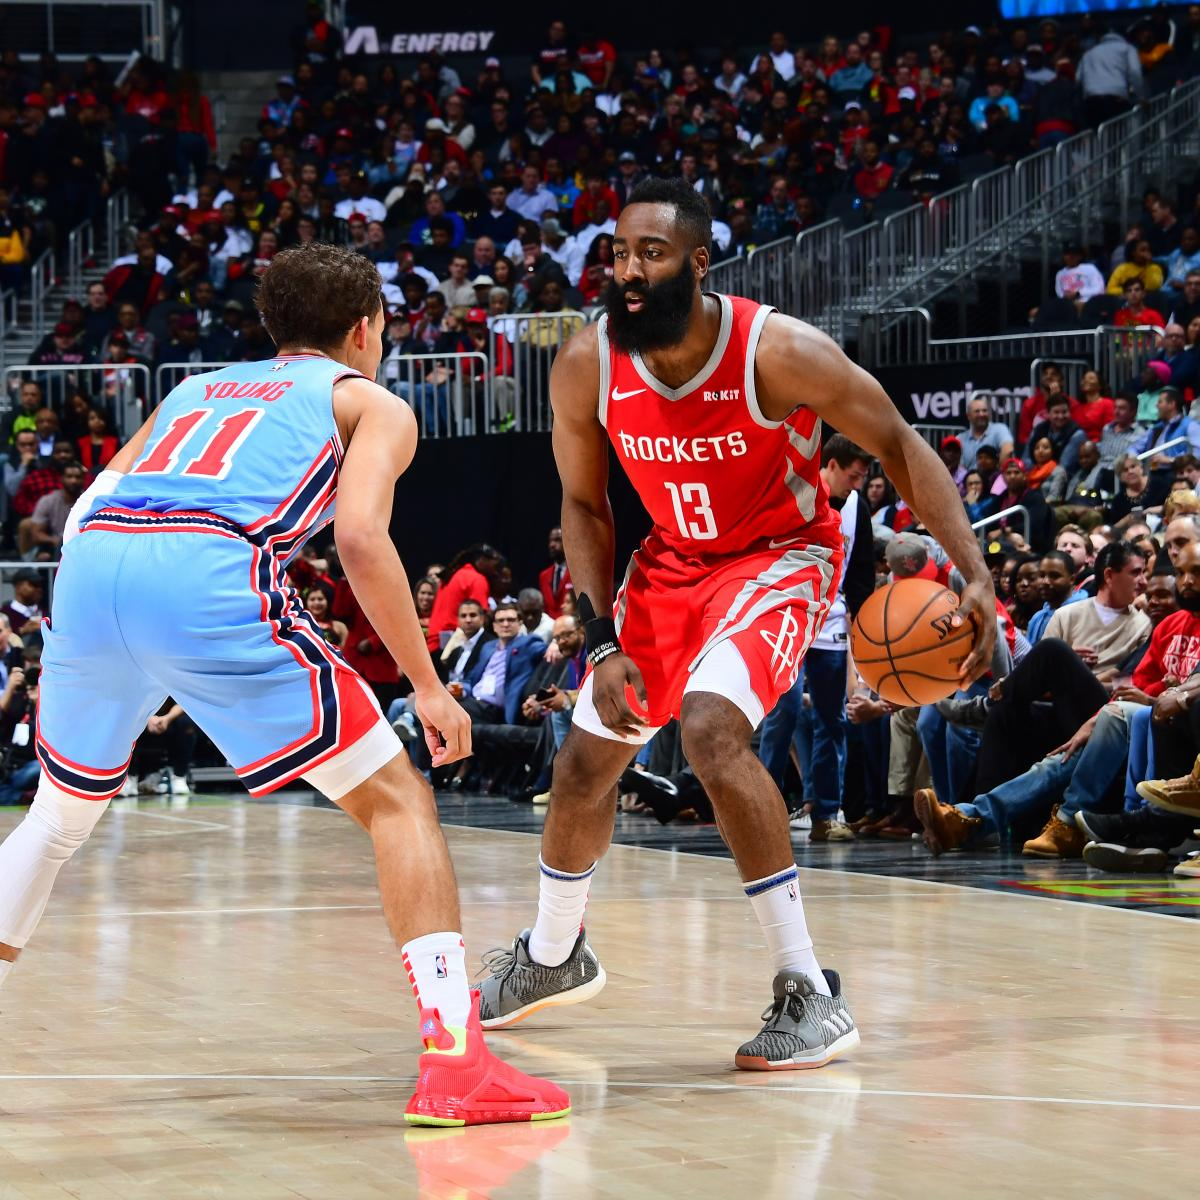 James Harden And Stephen Curry: James Harden Passes Stephen Curry For Most 3-Point Shot